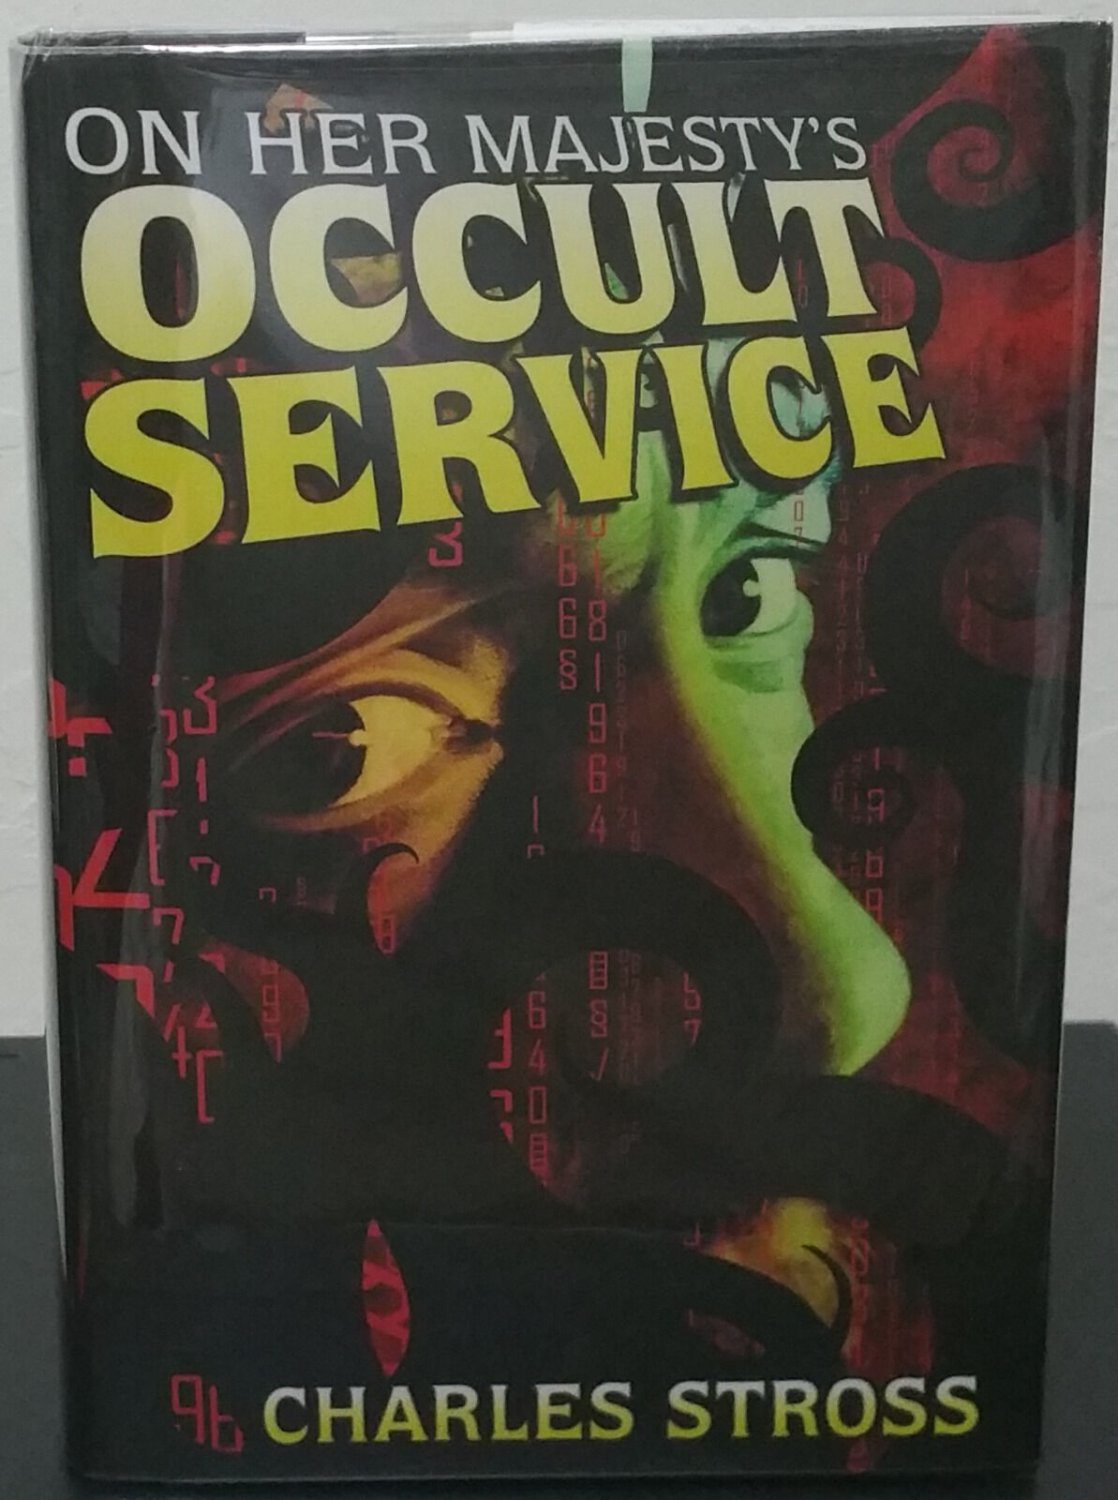 On Her Majesty's Occult Service by Charles Stross- Signed Bookclub Hardcover